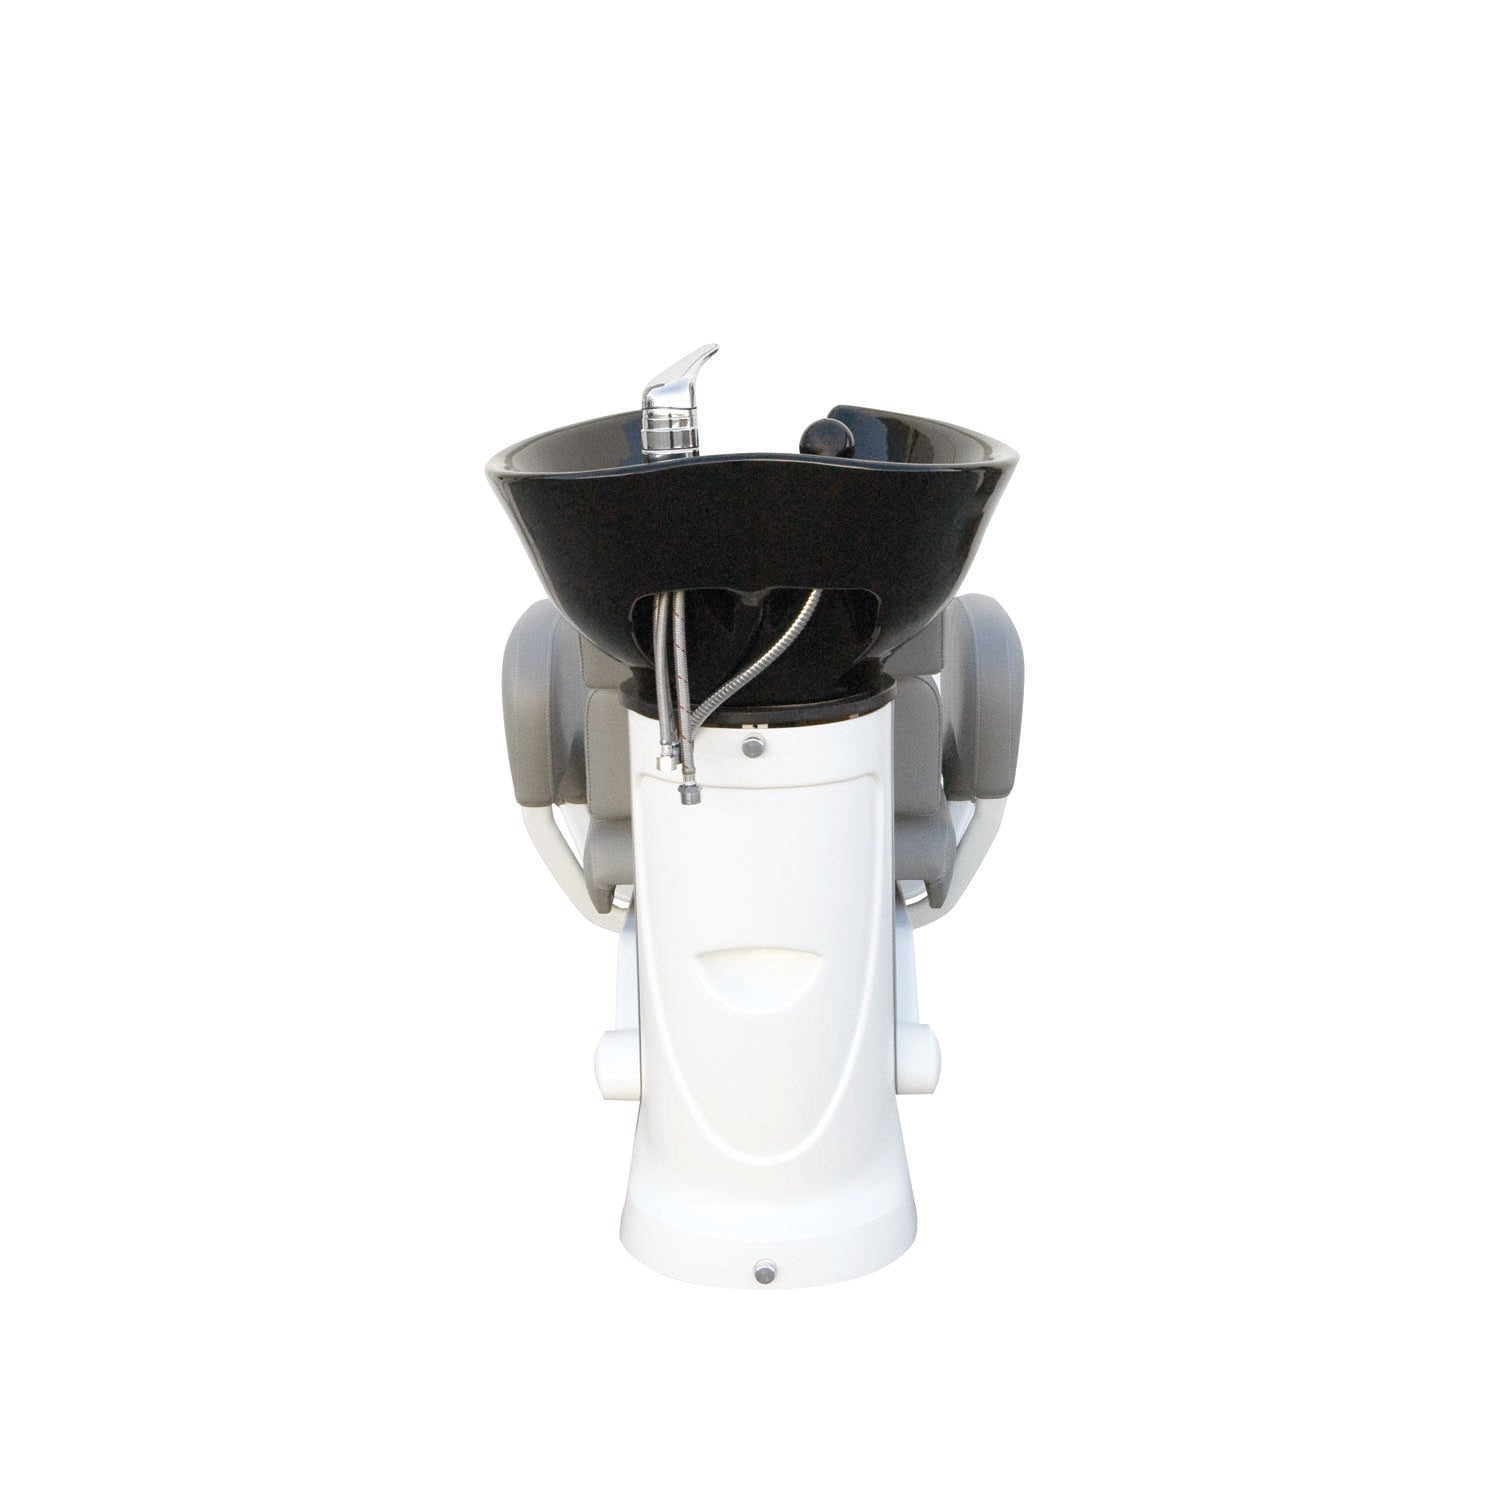 803 Shampoo Backwash System - Garfield Commercial Enterprises Salon Equipment Spa Furniture Barber Chair Luxury